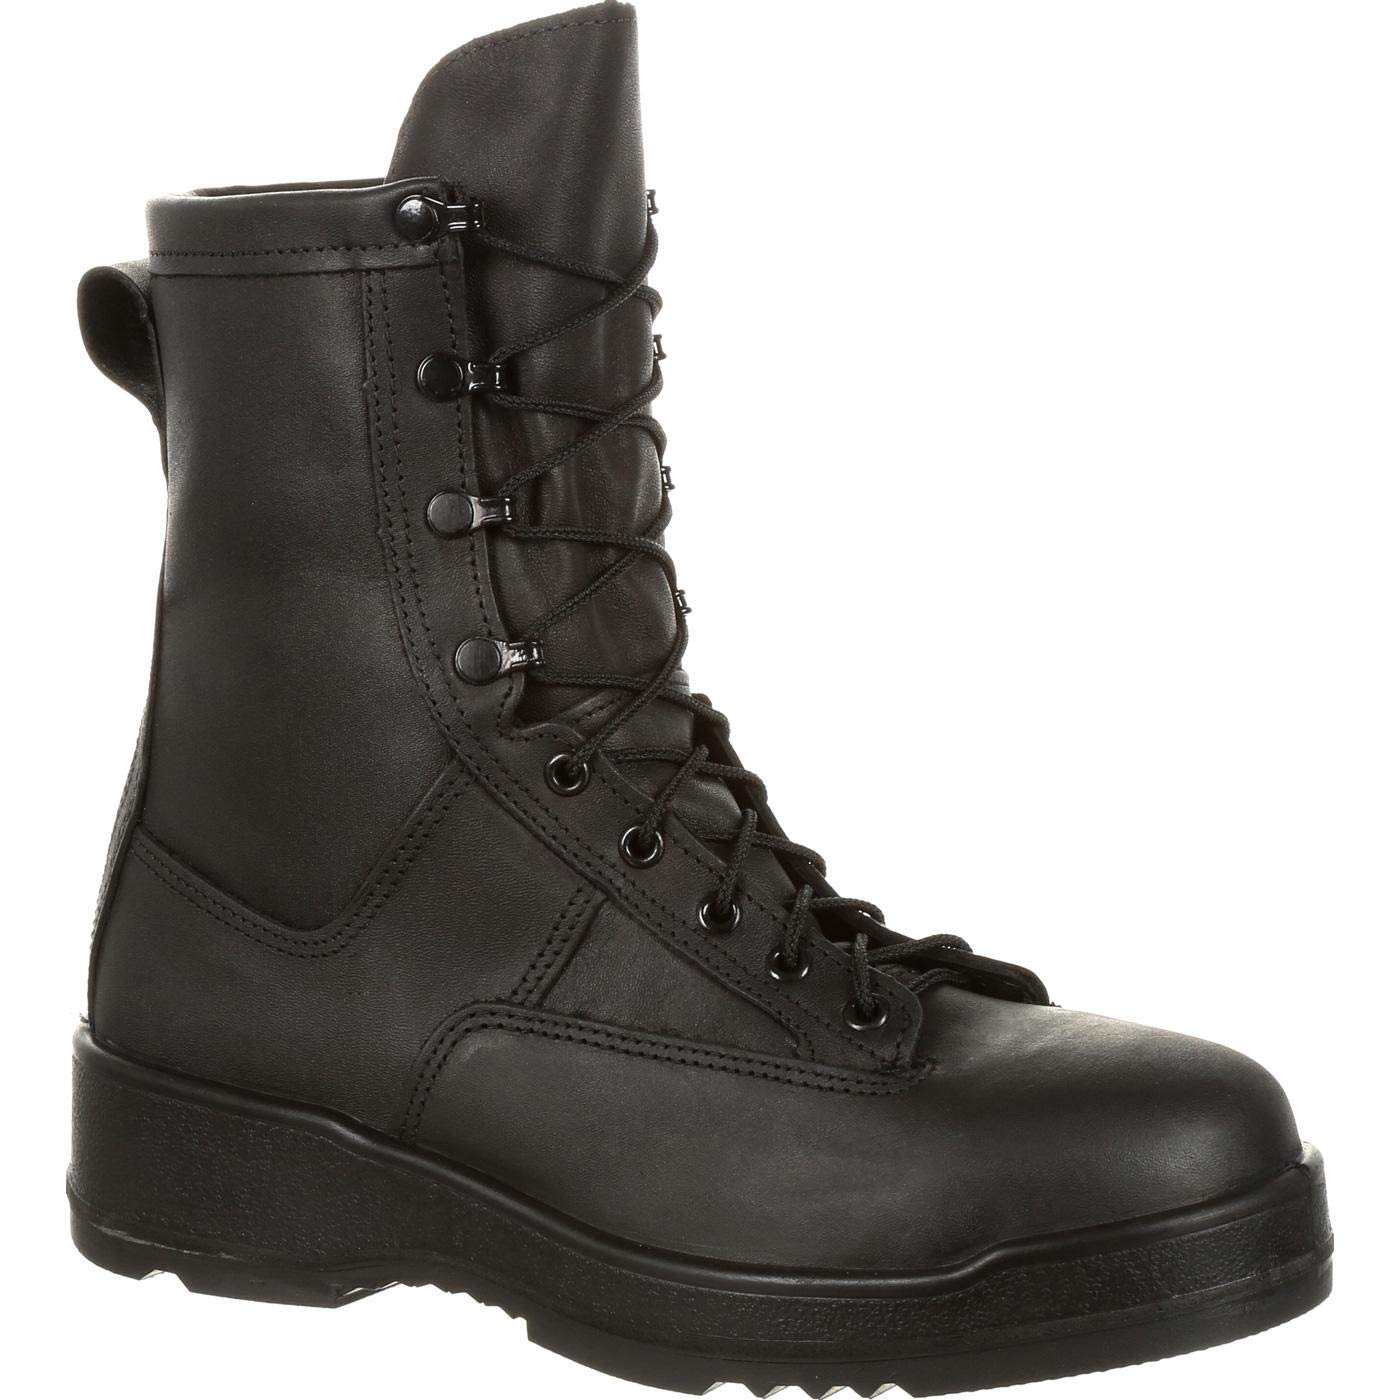 ROCKY Men's Entry Level Hot Weather Military Boot Steel Toe Black 9.5 EE by ROCKY